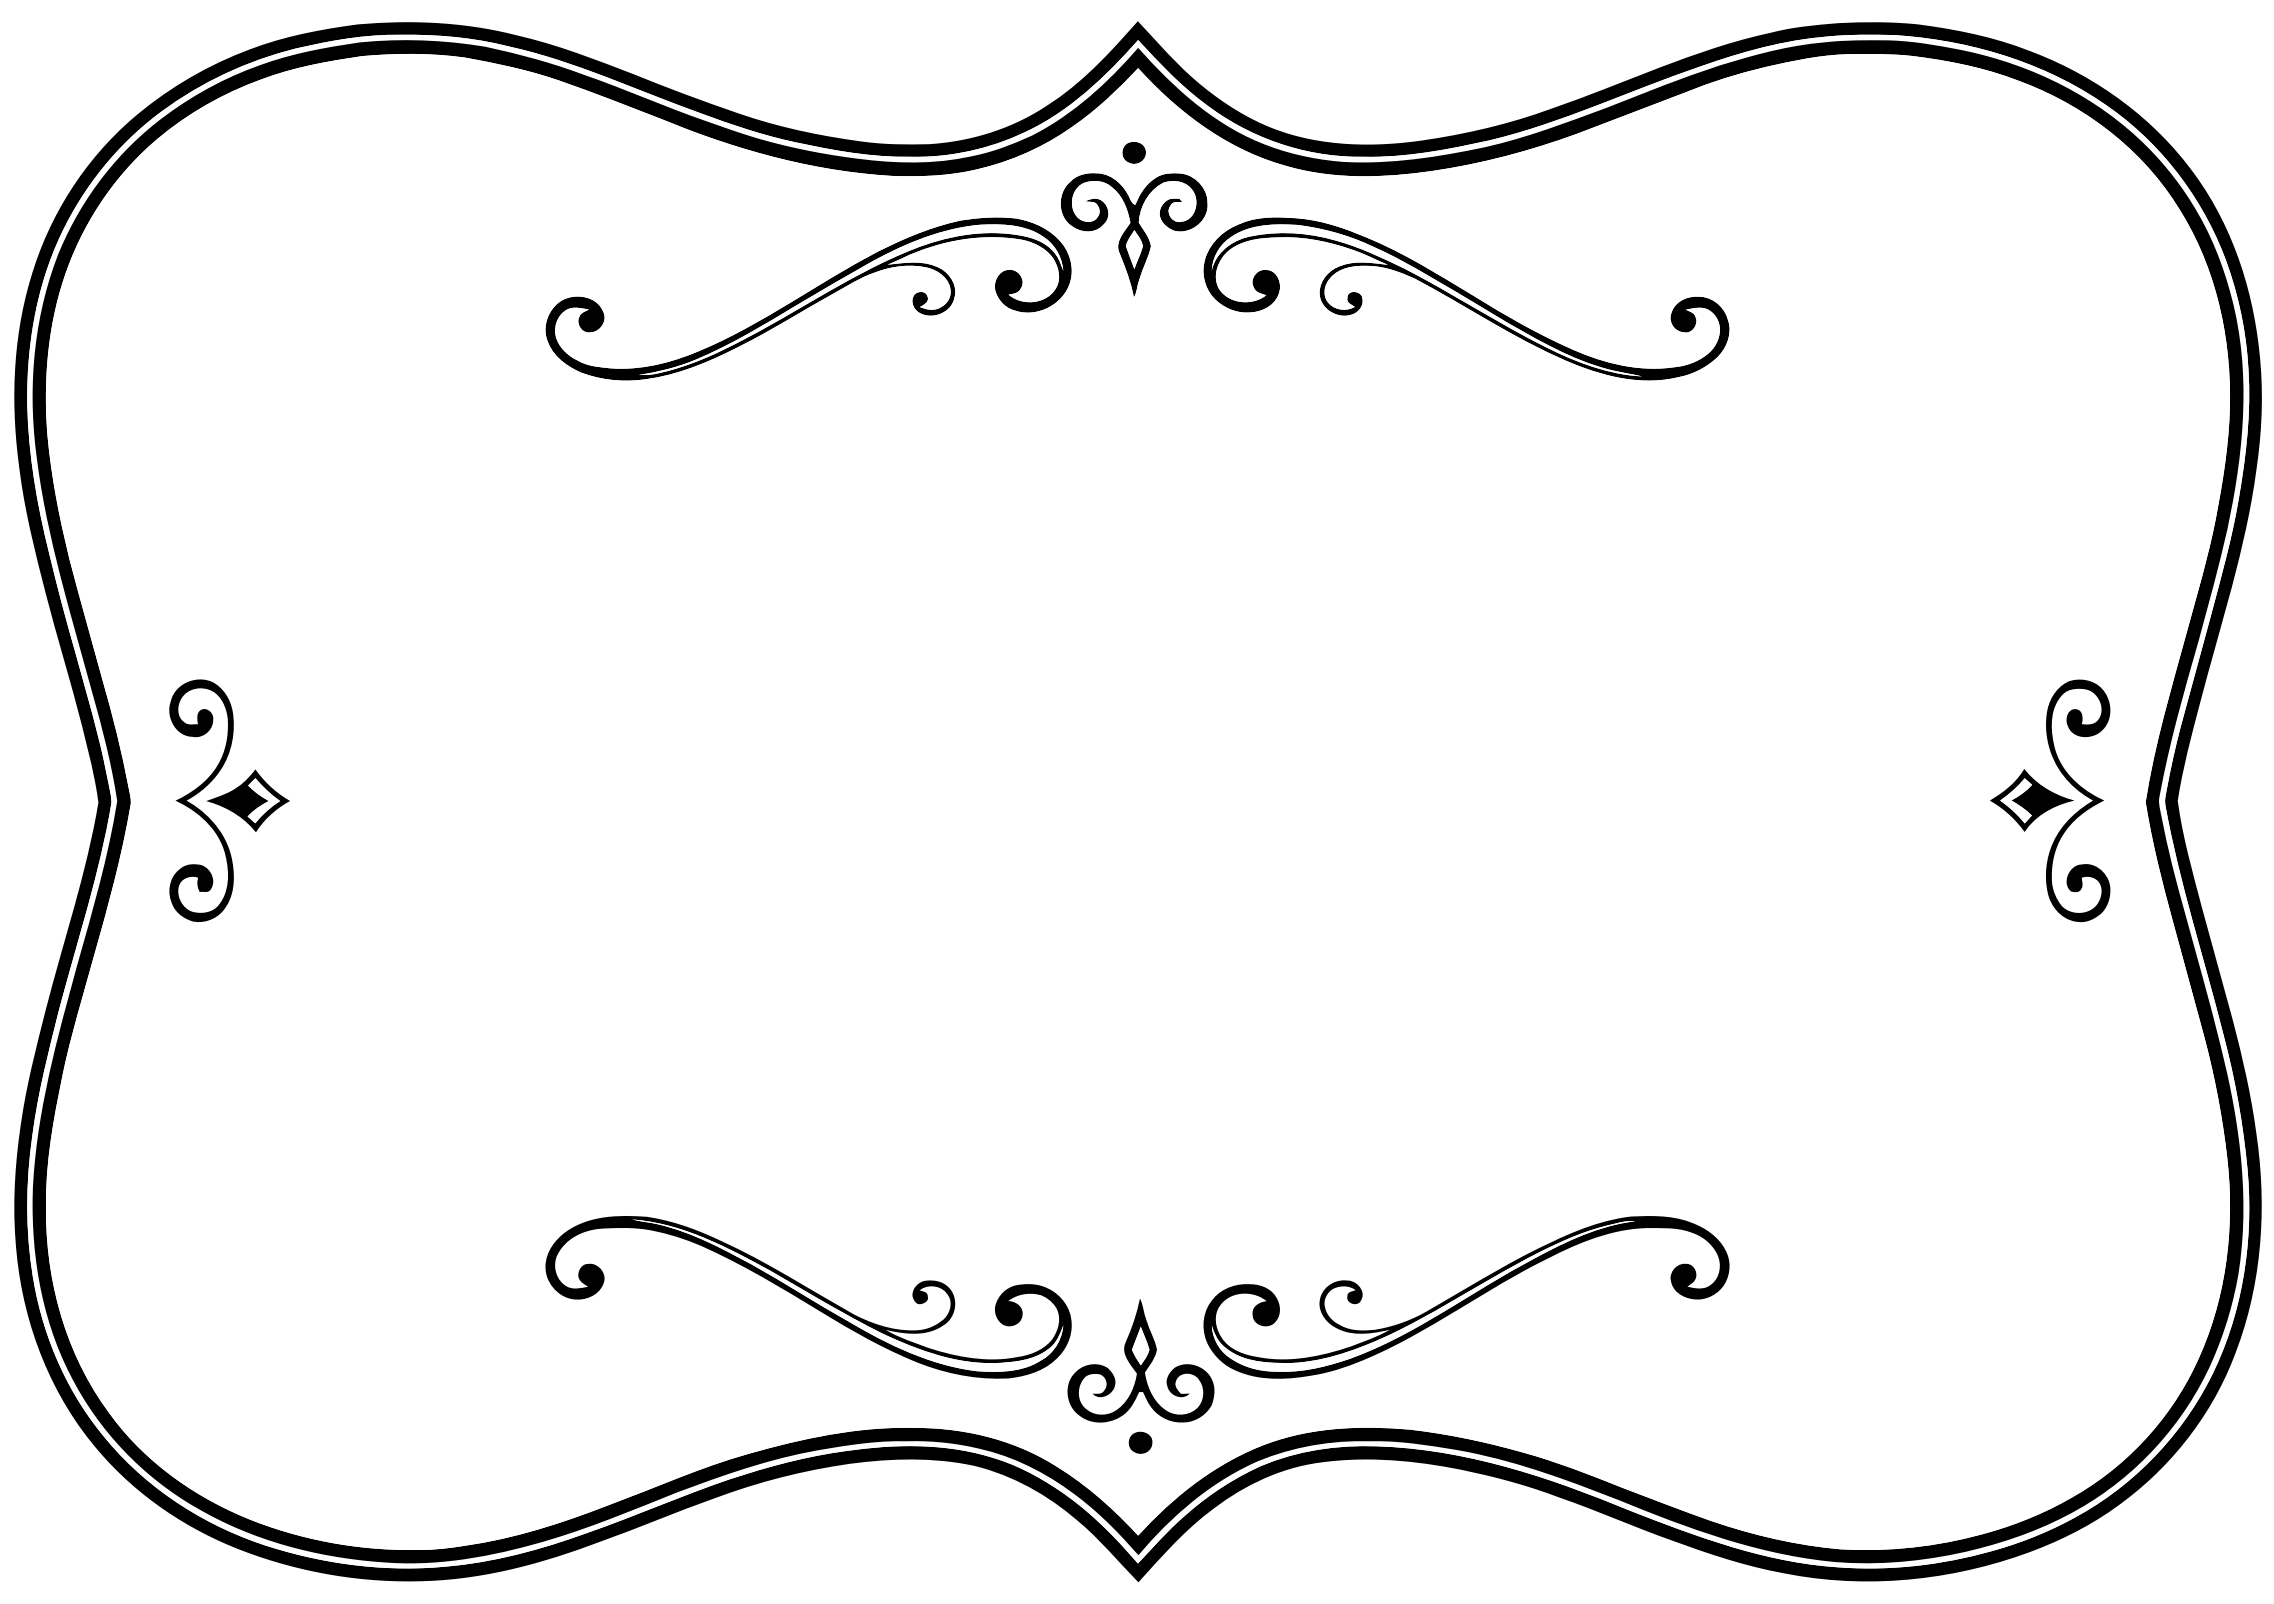 Decorative Black And White Flourish Frame By Gdj Decorative Black And White Flourish Frame On Openclipart Borders And Frames Art Deco Borders Free Clip Art